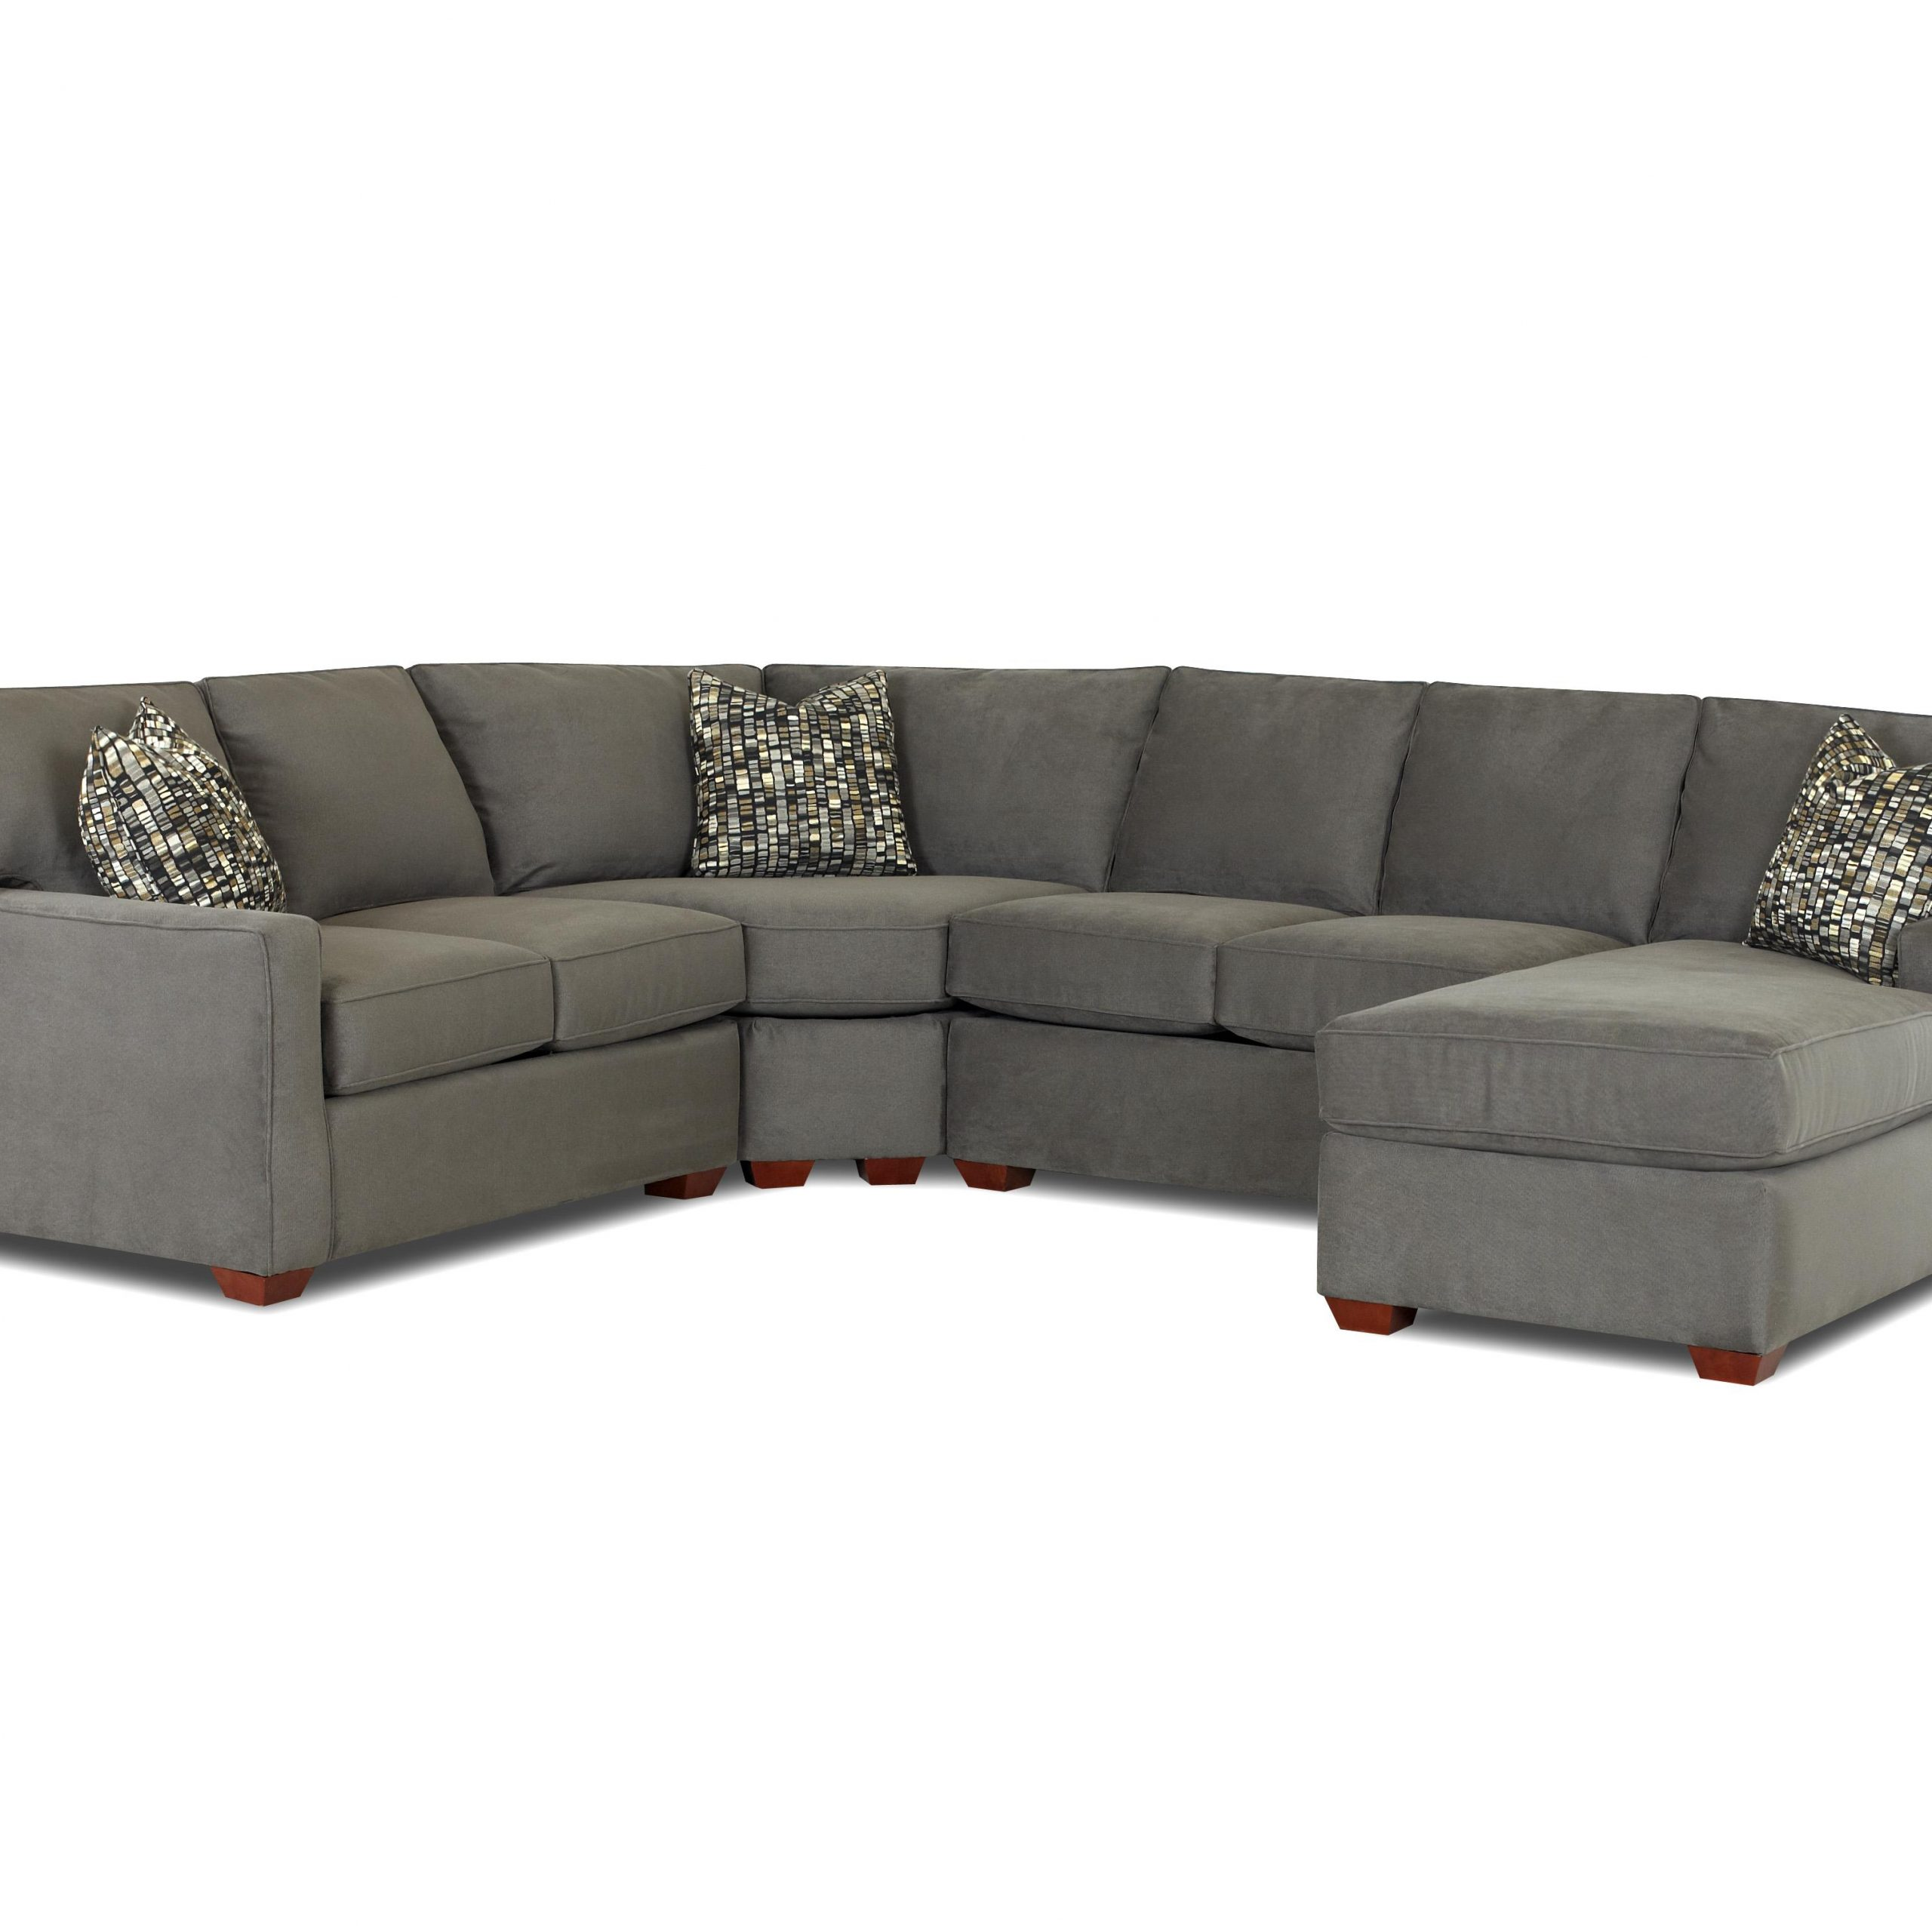 Contemporary L Shaped Sectional Sofa With Right Arm Facing Inside Copenhagen Reclining Sectional Sofas With Right Storage Chaise (View 13 of 15)